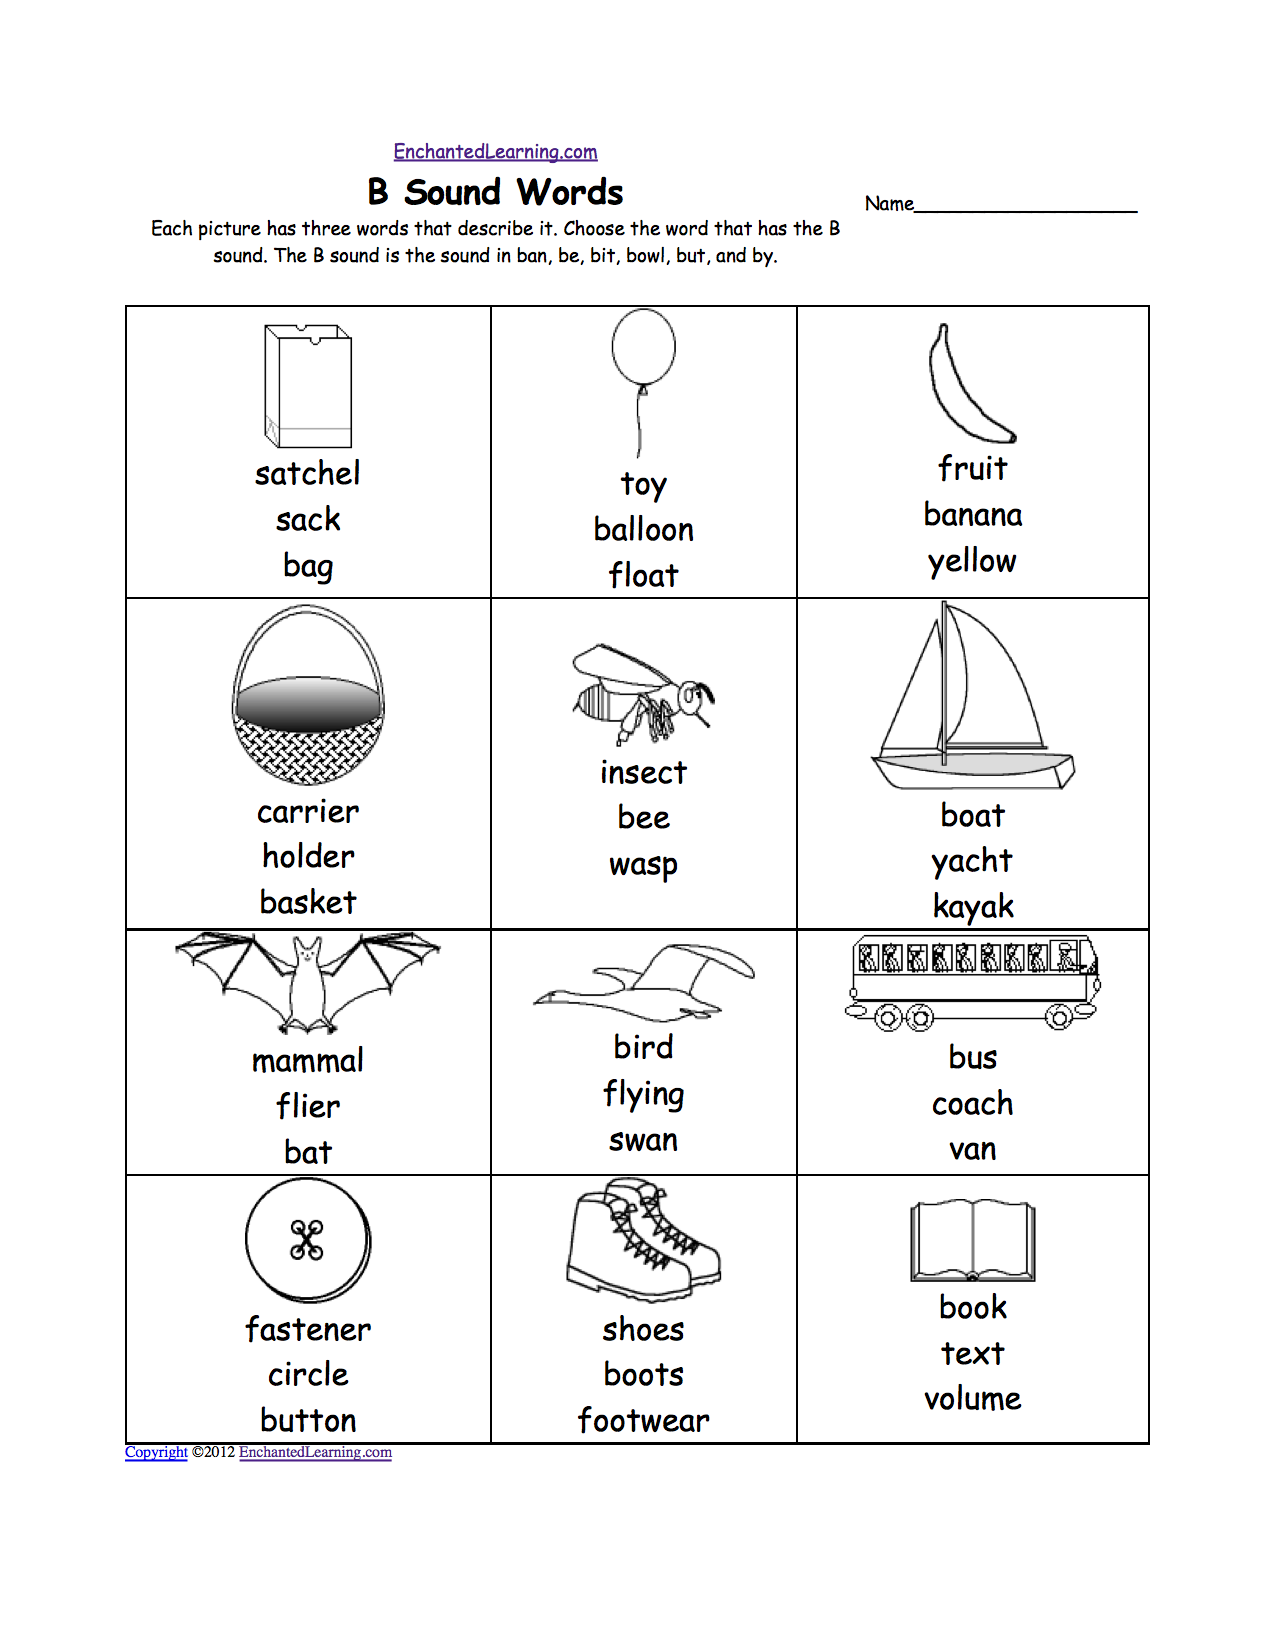 Aldiablosus  Winning Phonics Worksheets Multiple Choice Worksheets To Print  With Fascinating Quotbquot Sound Phonics Worksheet Multiple Choice Each Picture Has Three Words That Describe It Choose The Word That Has A Quotbquot Sound The Quotbquot Sound Is The Sound  With Extraordinary Rhyming Worksheets Free Also Compound Naming Worksheet In Addition Annabel Lee Worksheet And Trace Alphabet Worksheets As Well As Goldilocks And The Three Bears Worksheets Additionally Microscope Mania Worksheet From Enchantedlearningcom With Aldiablosus  Fascinating Phonics Worksheets Multiple Choice Worksheets To Print  With Extraordinary Quotbquot Sound Phonics Worksheet Multiple Choice Each Picture Has Three Words That Describe It Choose The Word That Has A Quotbquot Sound The Quotbquot Sound Is The Sound  And Winning Rhyming Worksheets Free Also Compound Naming Worksheet In Addition Annabel Lee Worksheet From Enchantedlearningcom